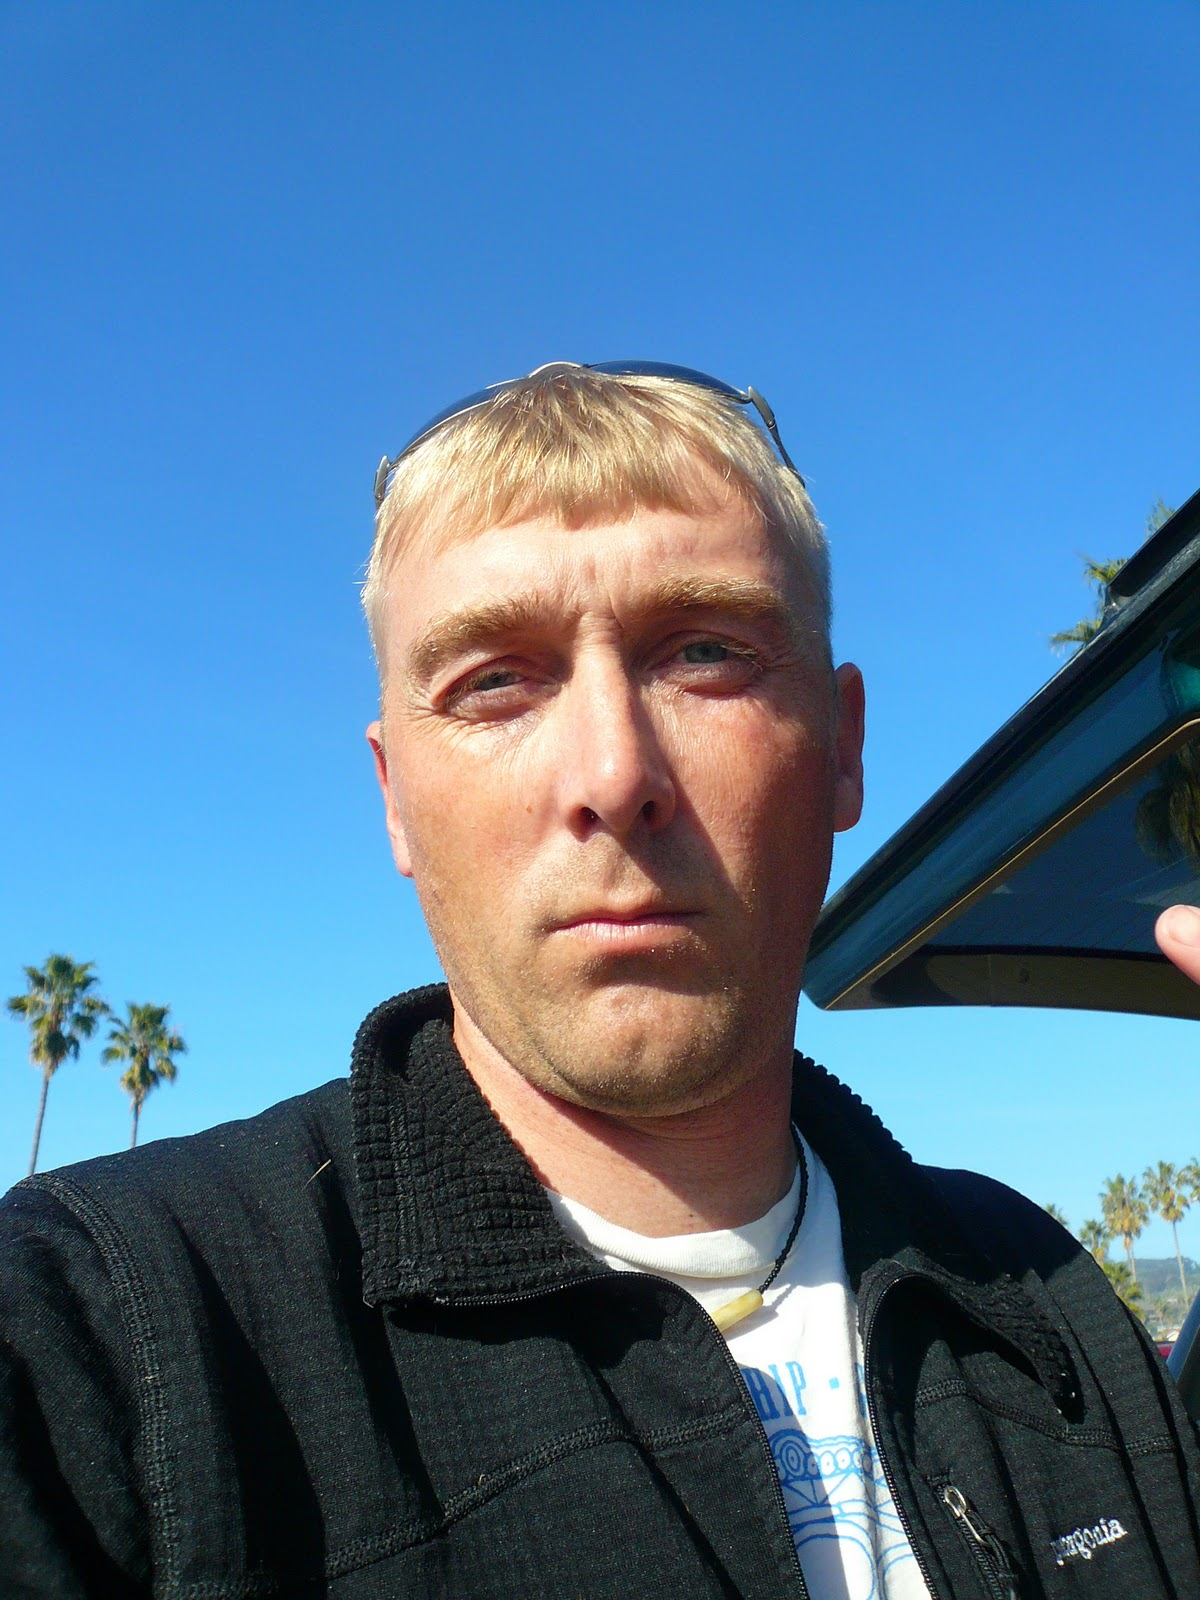 Kicking My Own Day 4 La Jolla Shores And The Zen Of A Bad Haircut